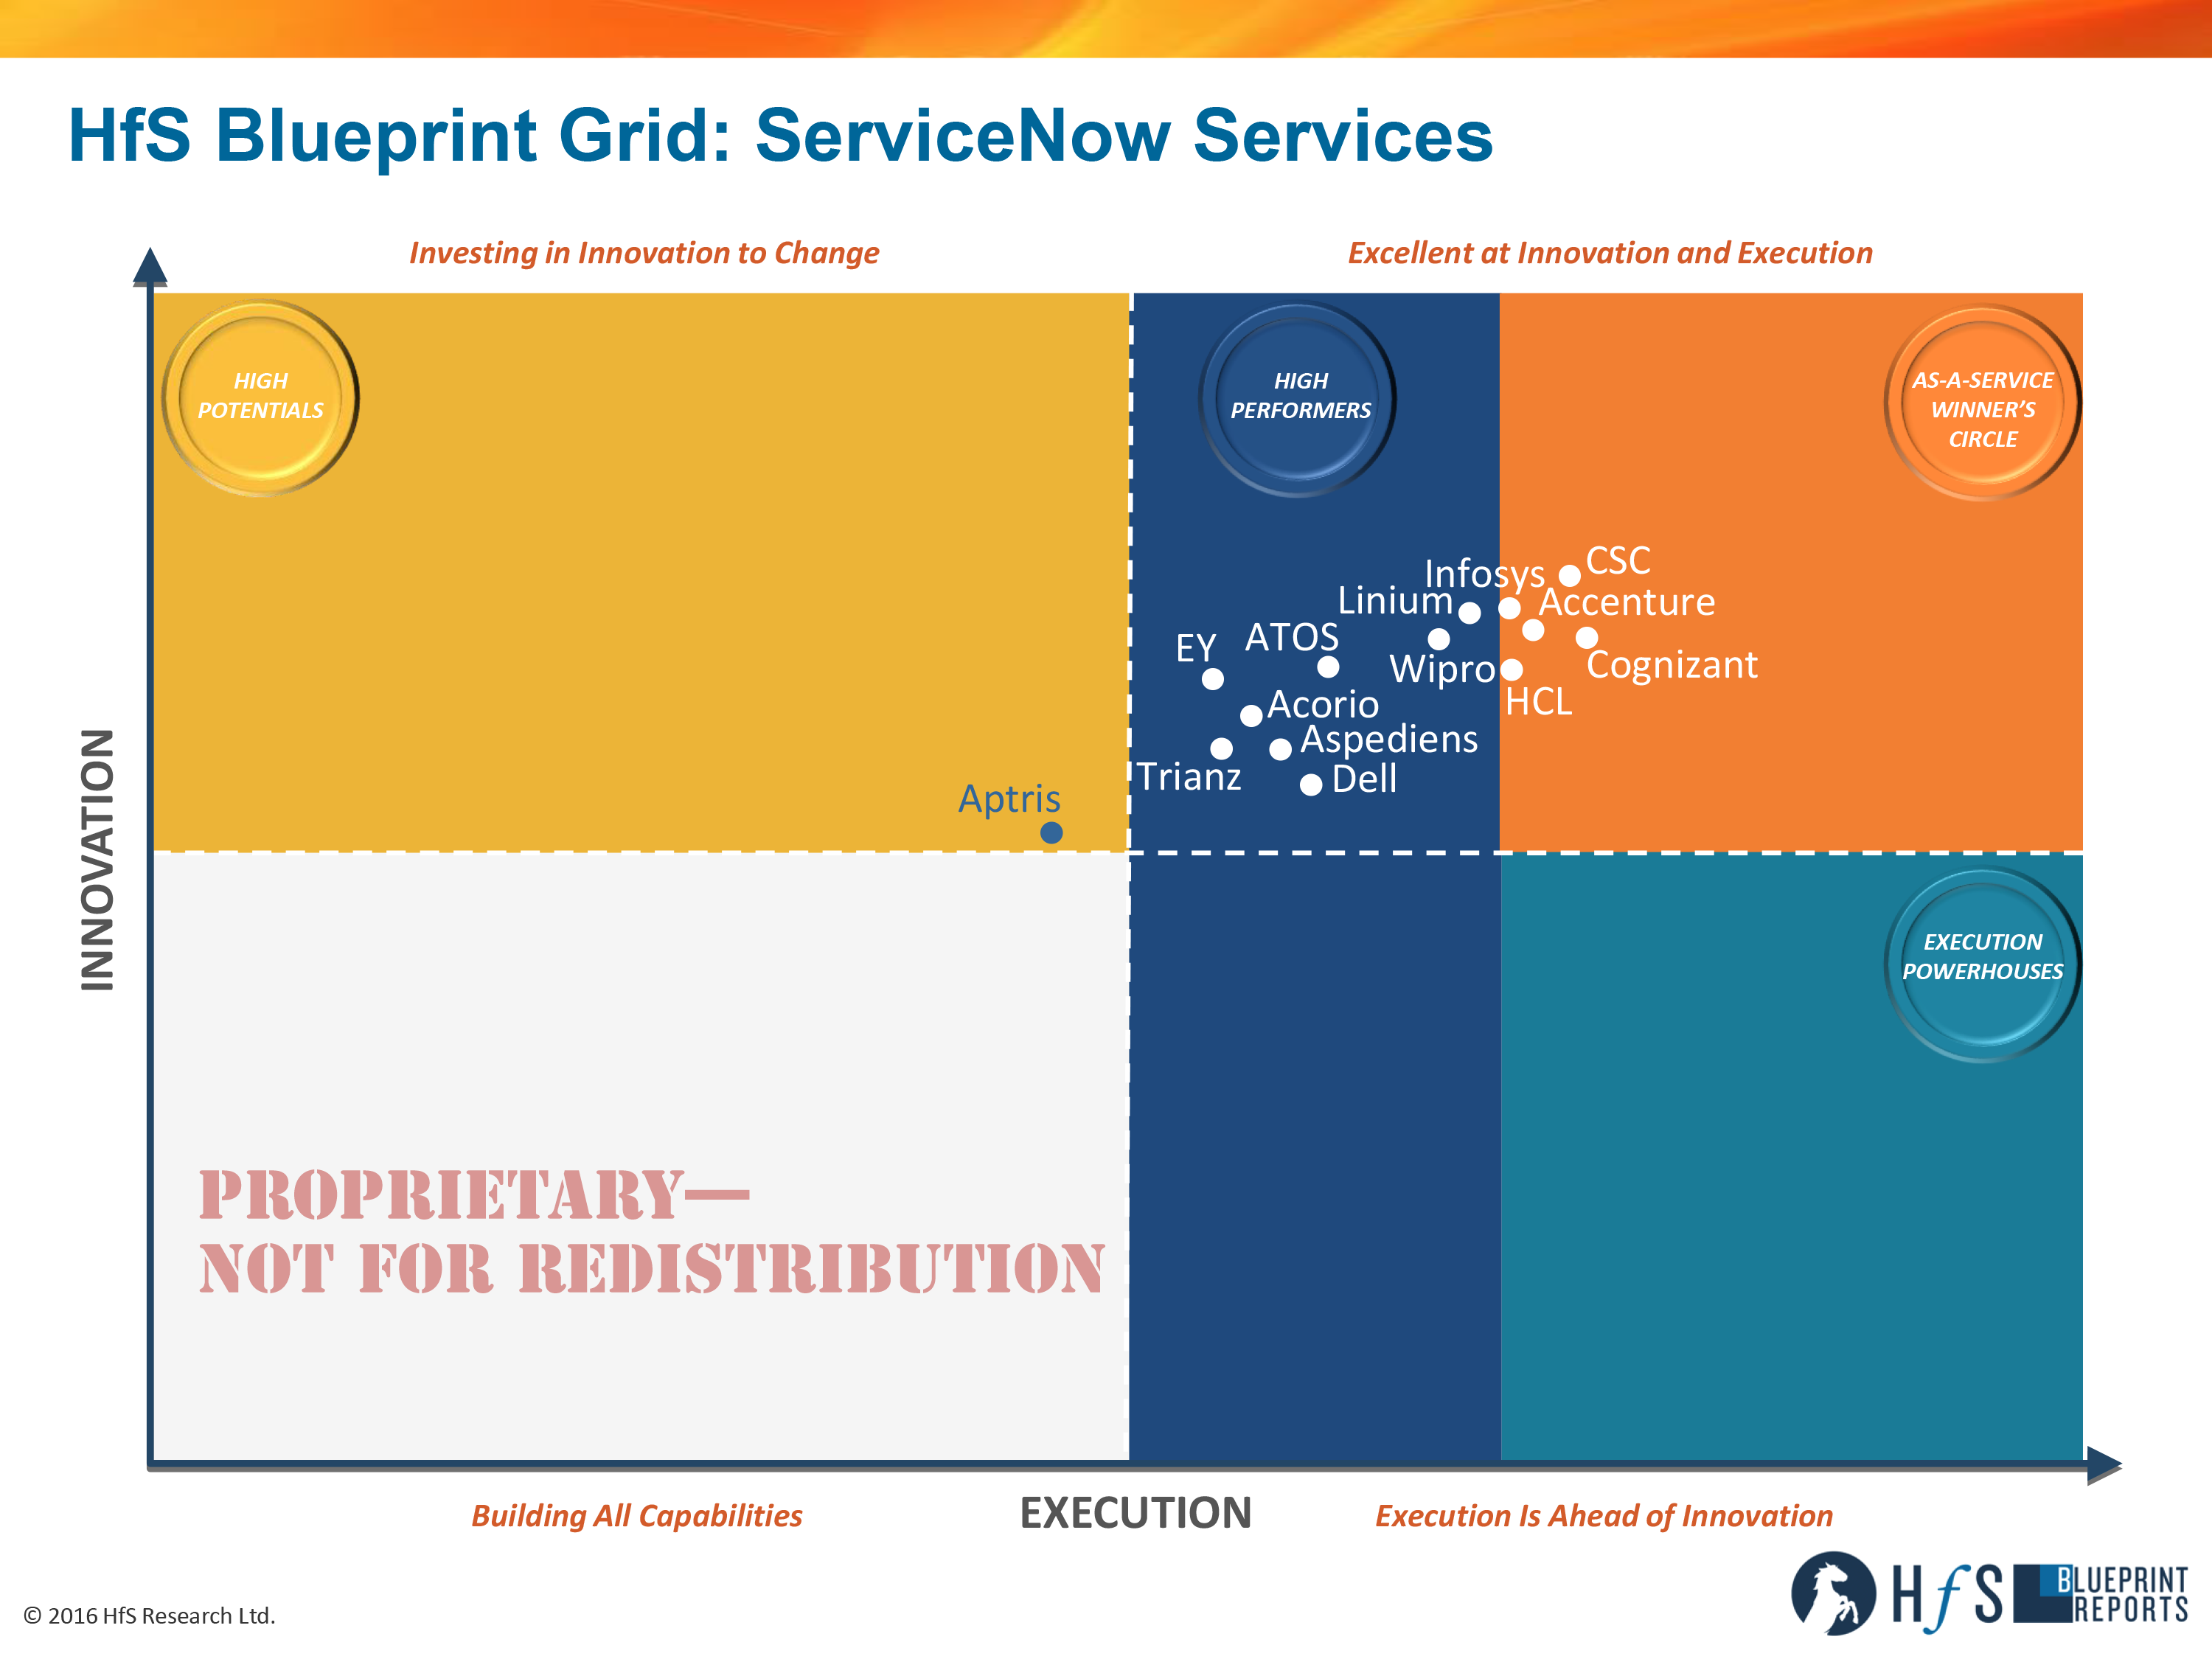 Hfs unveils the first servicenow services blueprint report with csc there appears to be a buzz around servicenow in the industry is the hype justified and where does it fit in strategically for buyers malvernweather Image collections